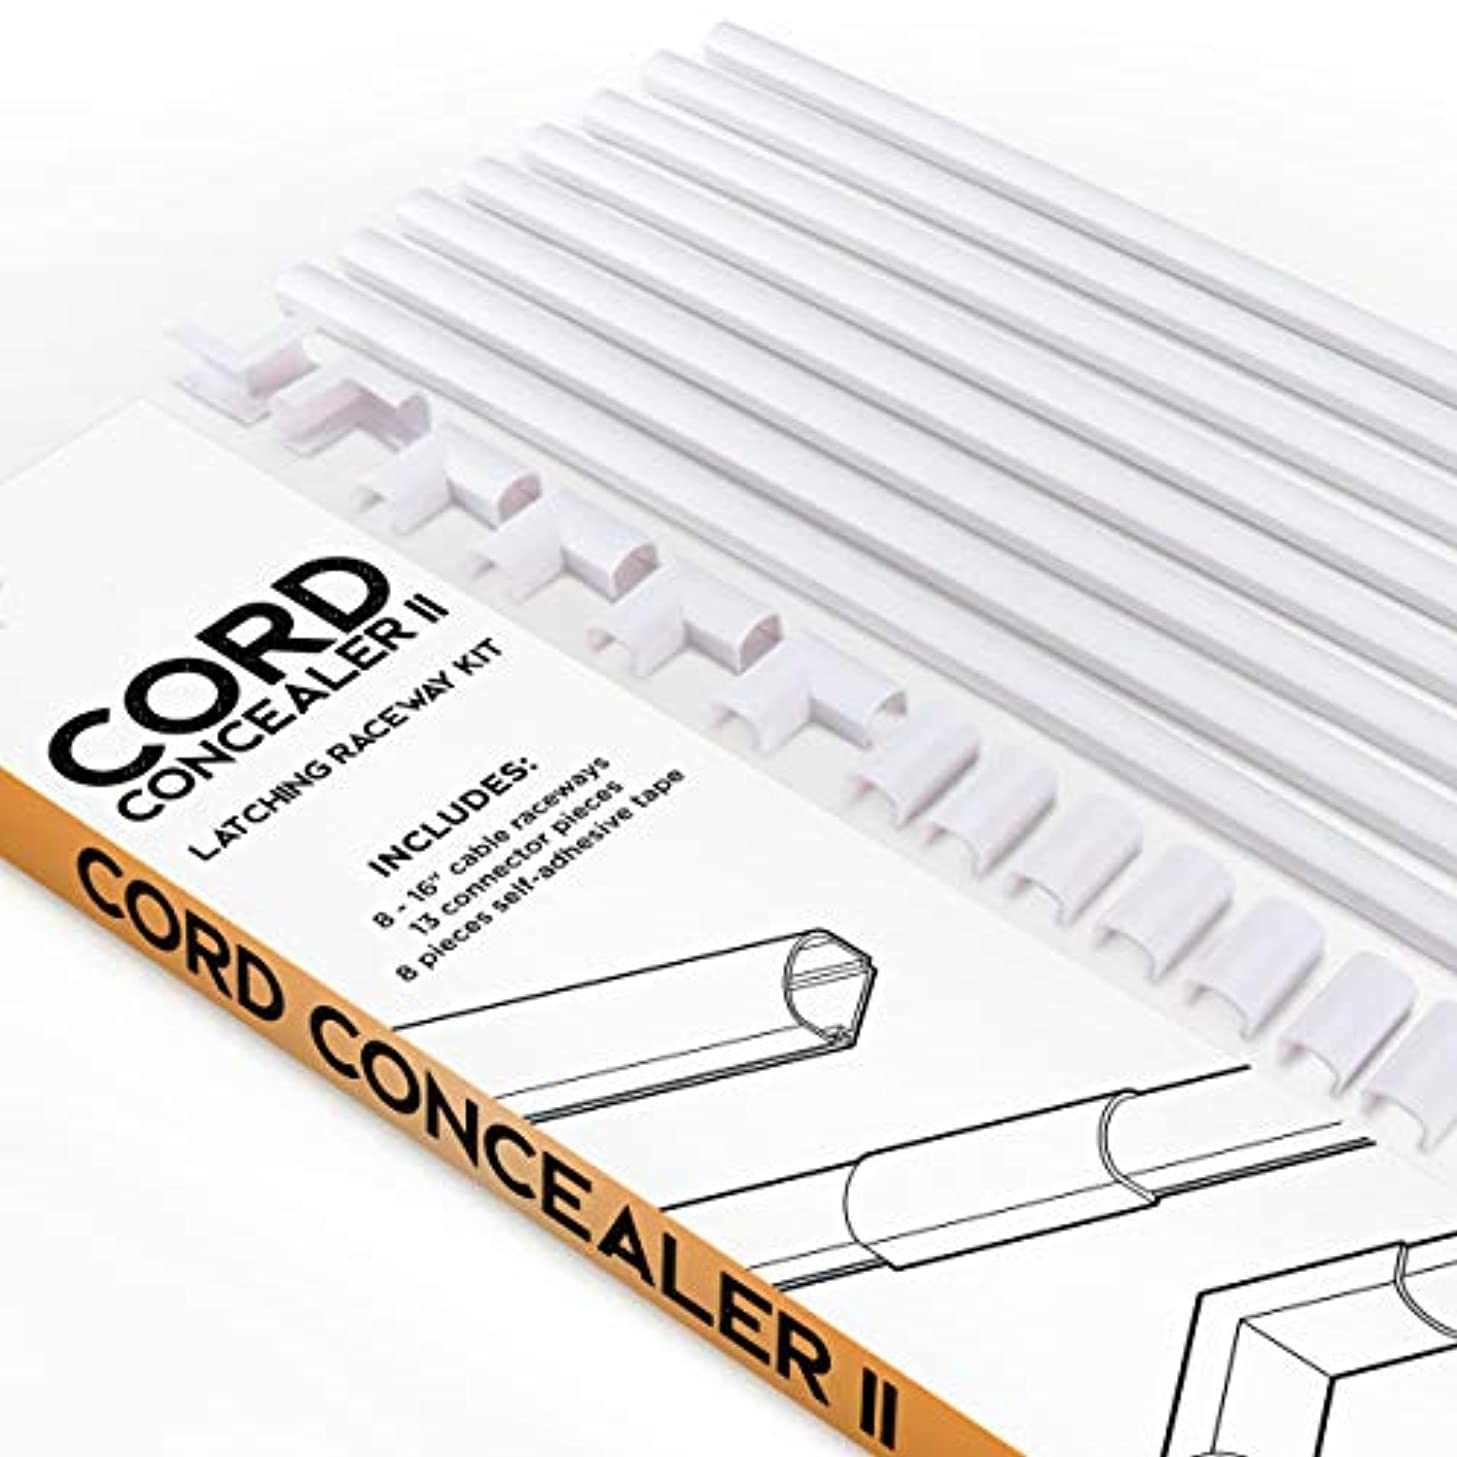 Cord Concealer II One-Cord Raceway Kit - SimpleCord Cable Cover fits 1 Cord - 128